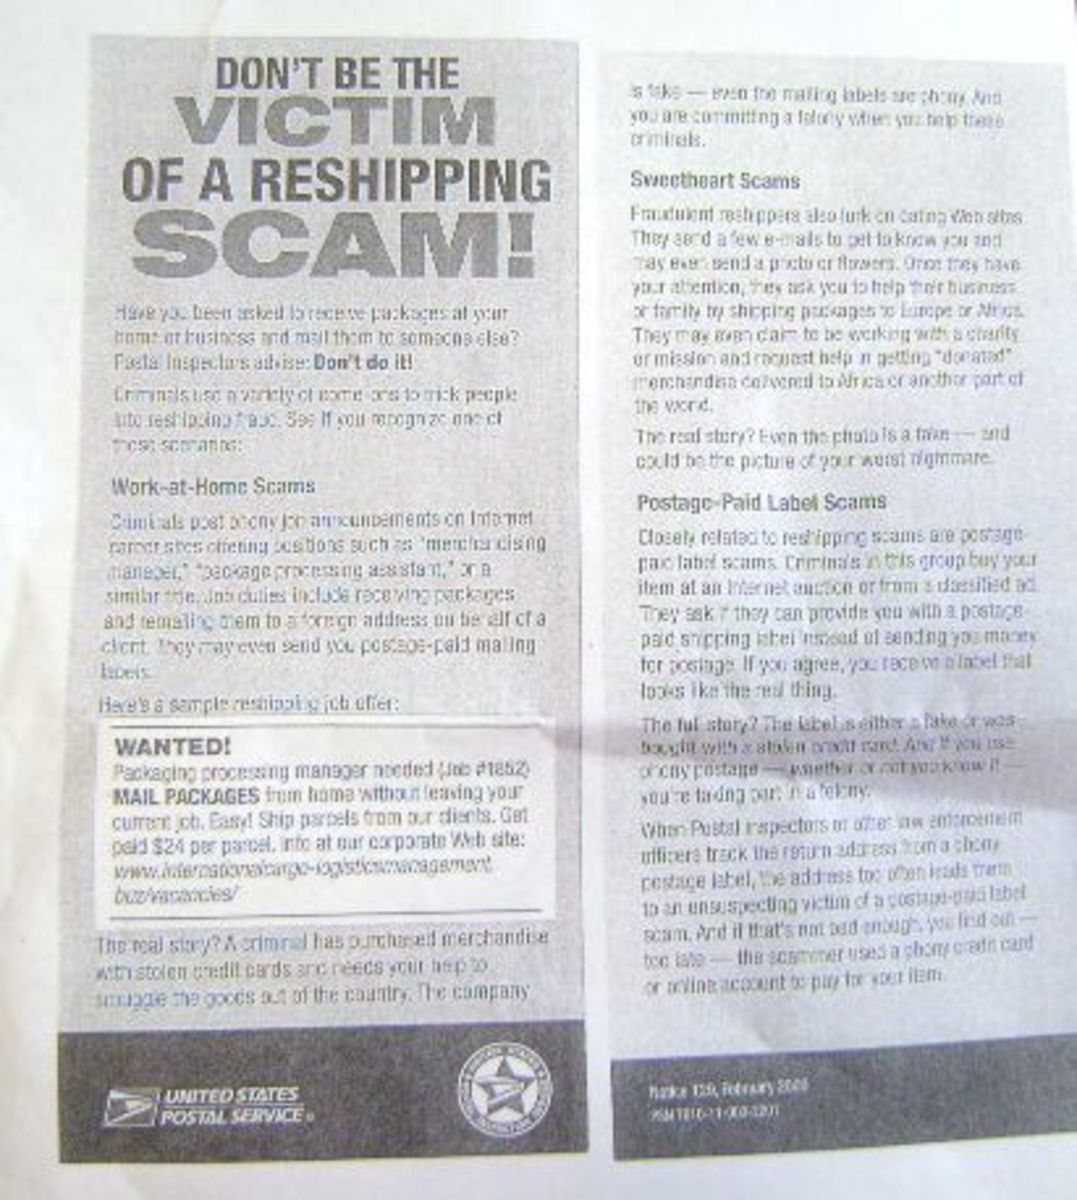 dont-be-a-victim-of-the-re-shipping-scam